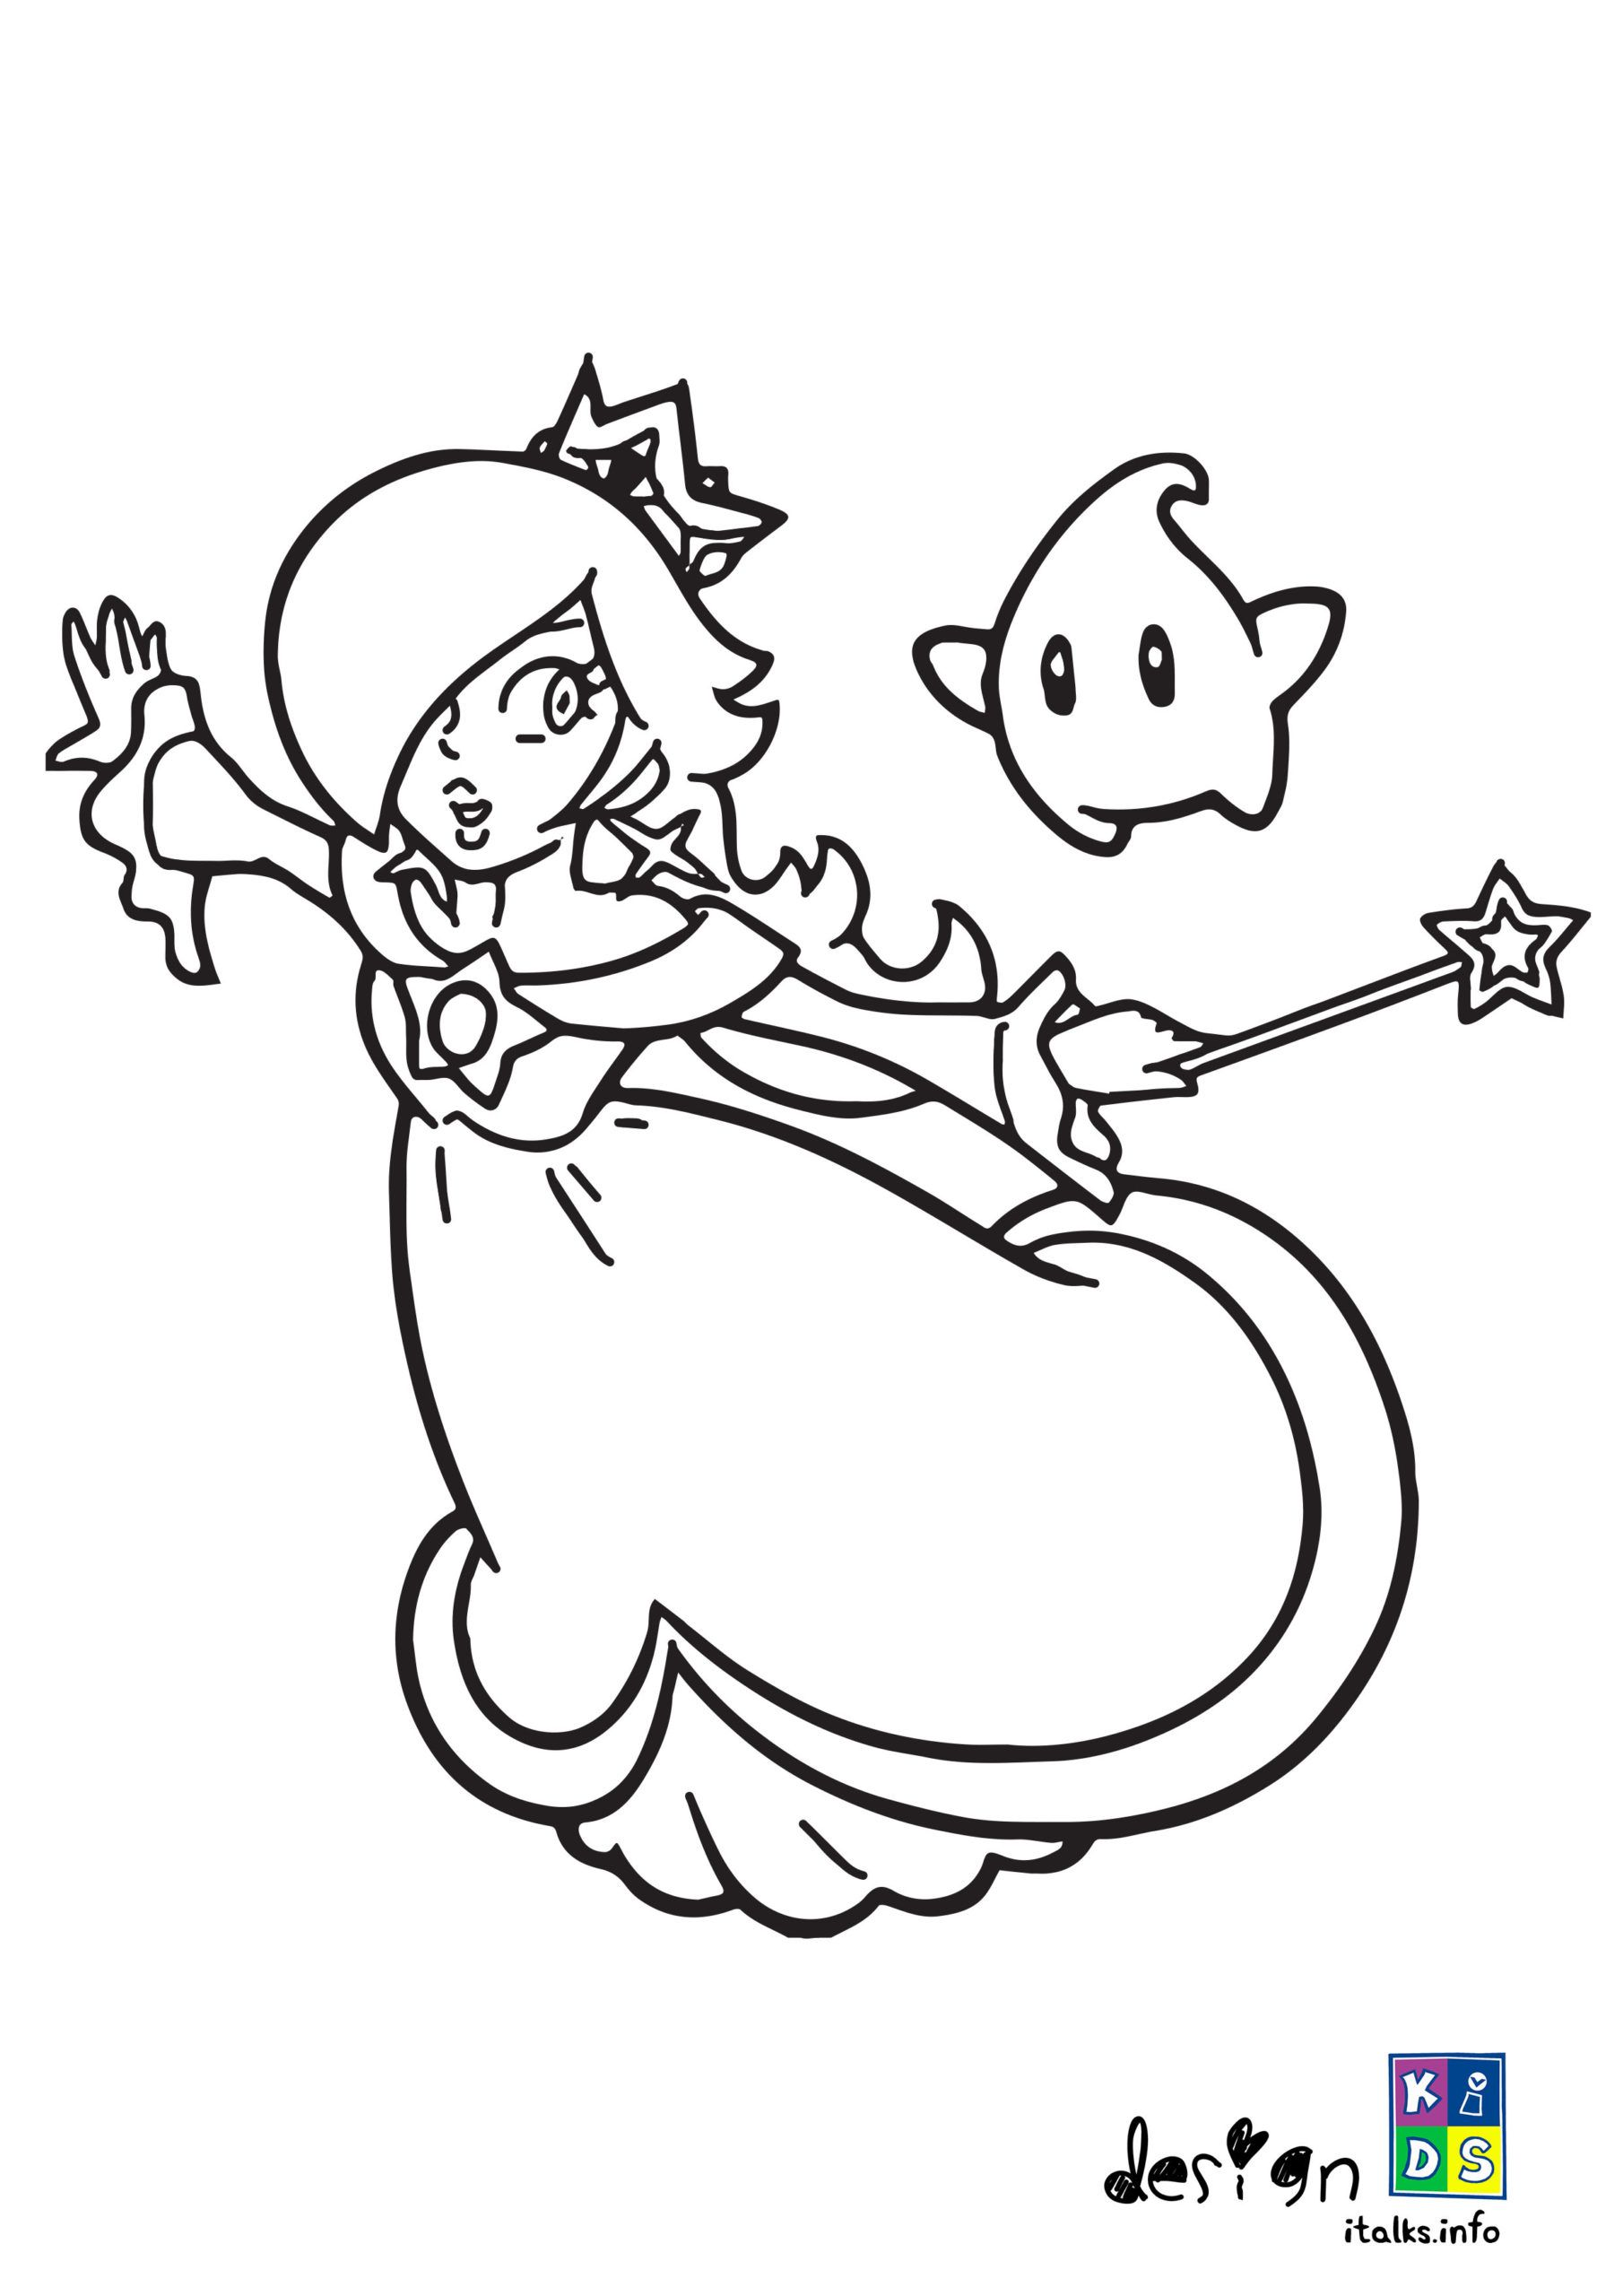 Princess Peach Coloring Page In 2020 Coloring Pages Coloring Books Color